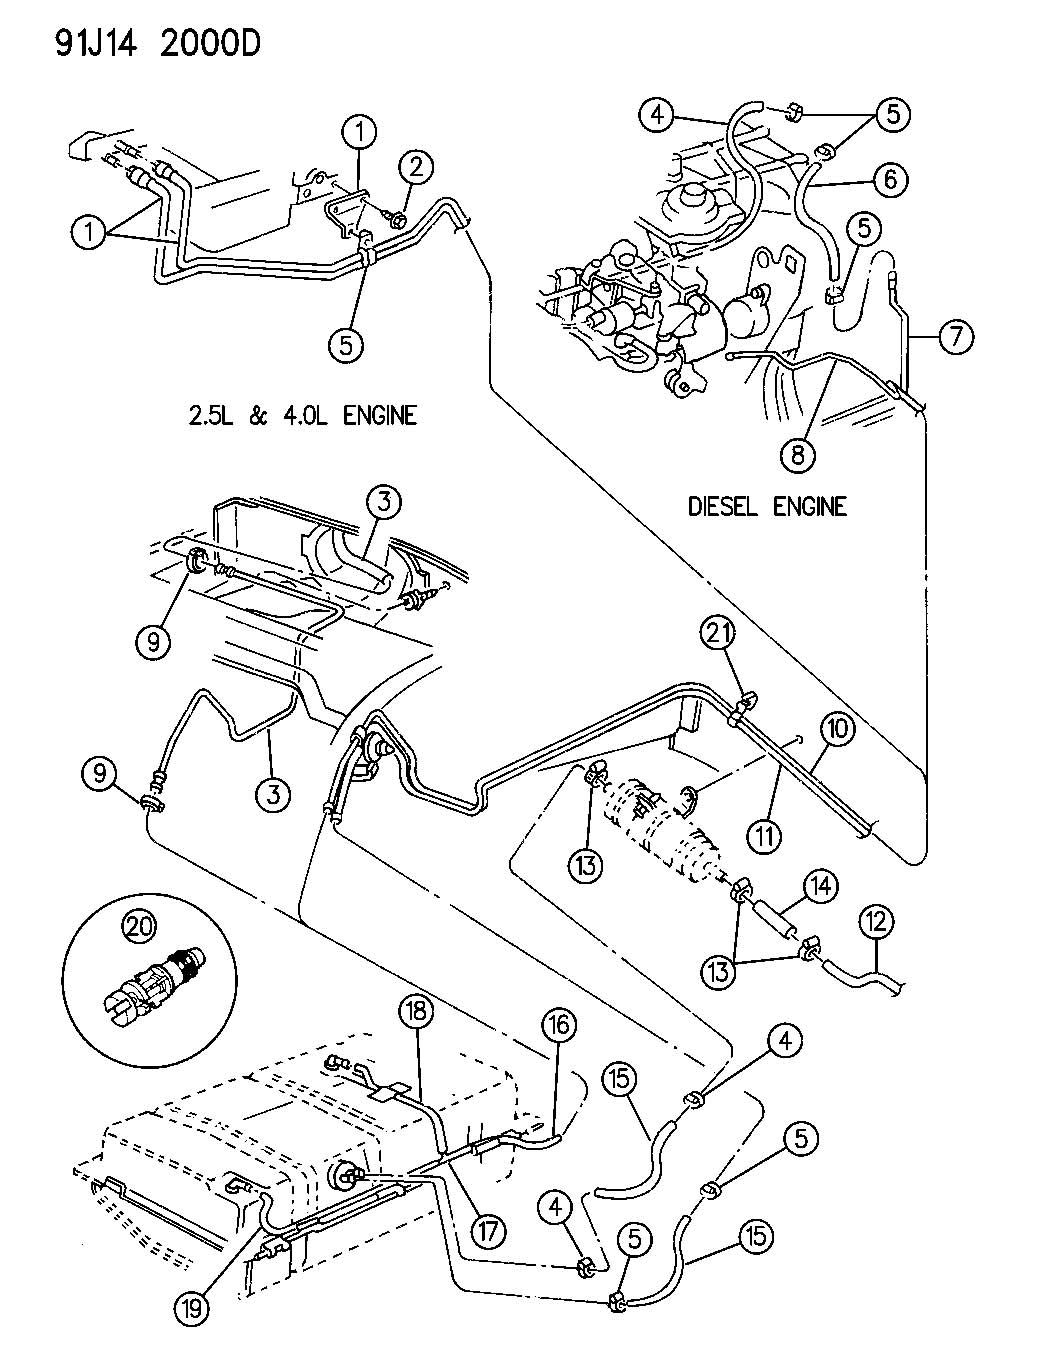 Service manual [How To Unblock Fuel Line Inside 1992 Jeep